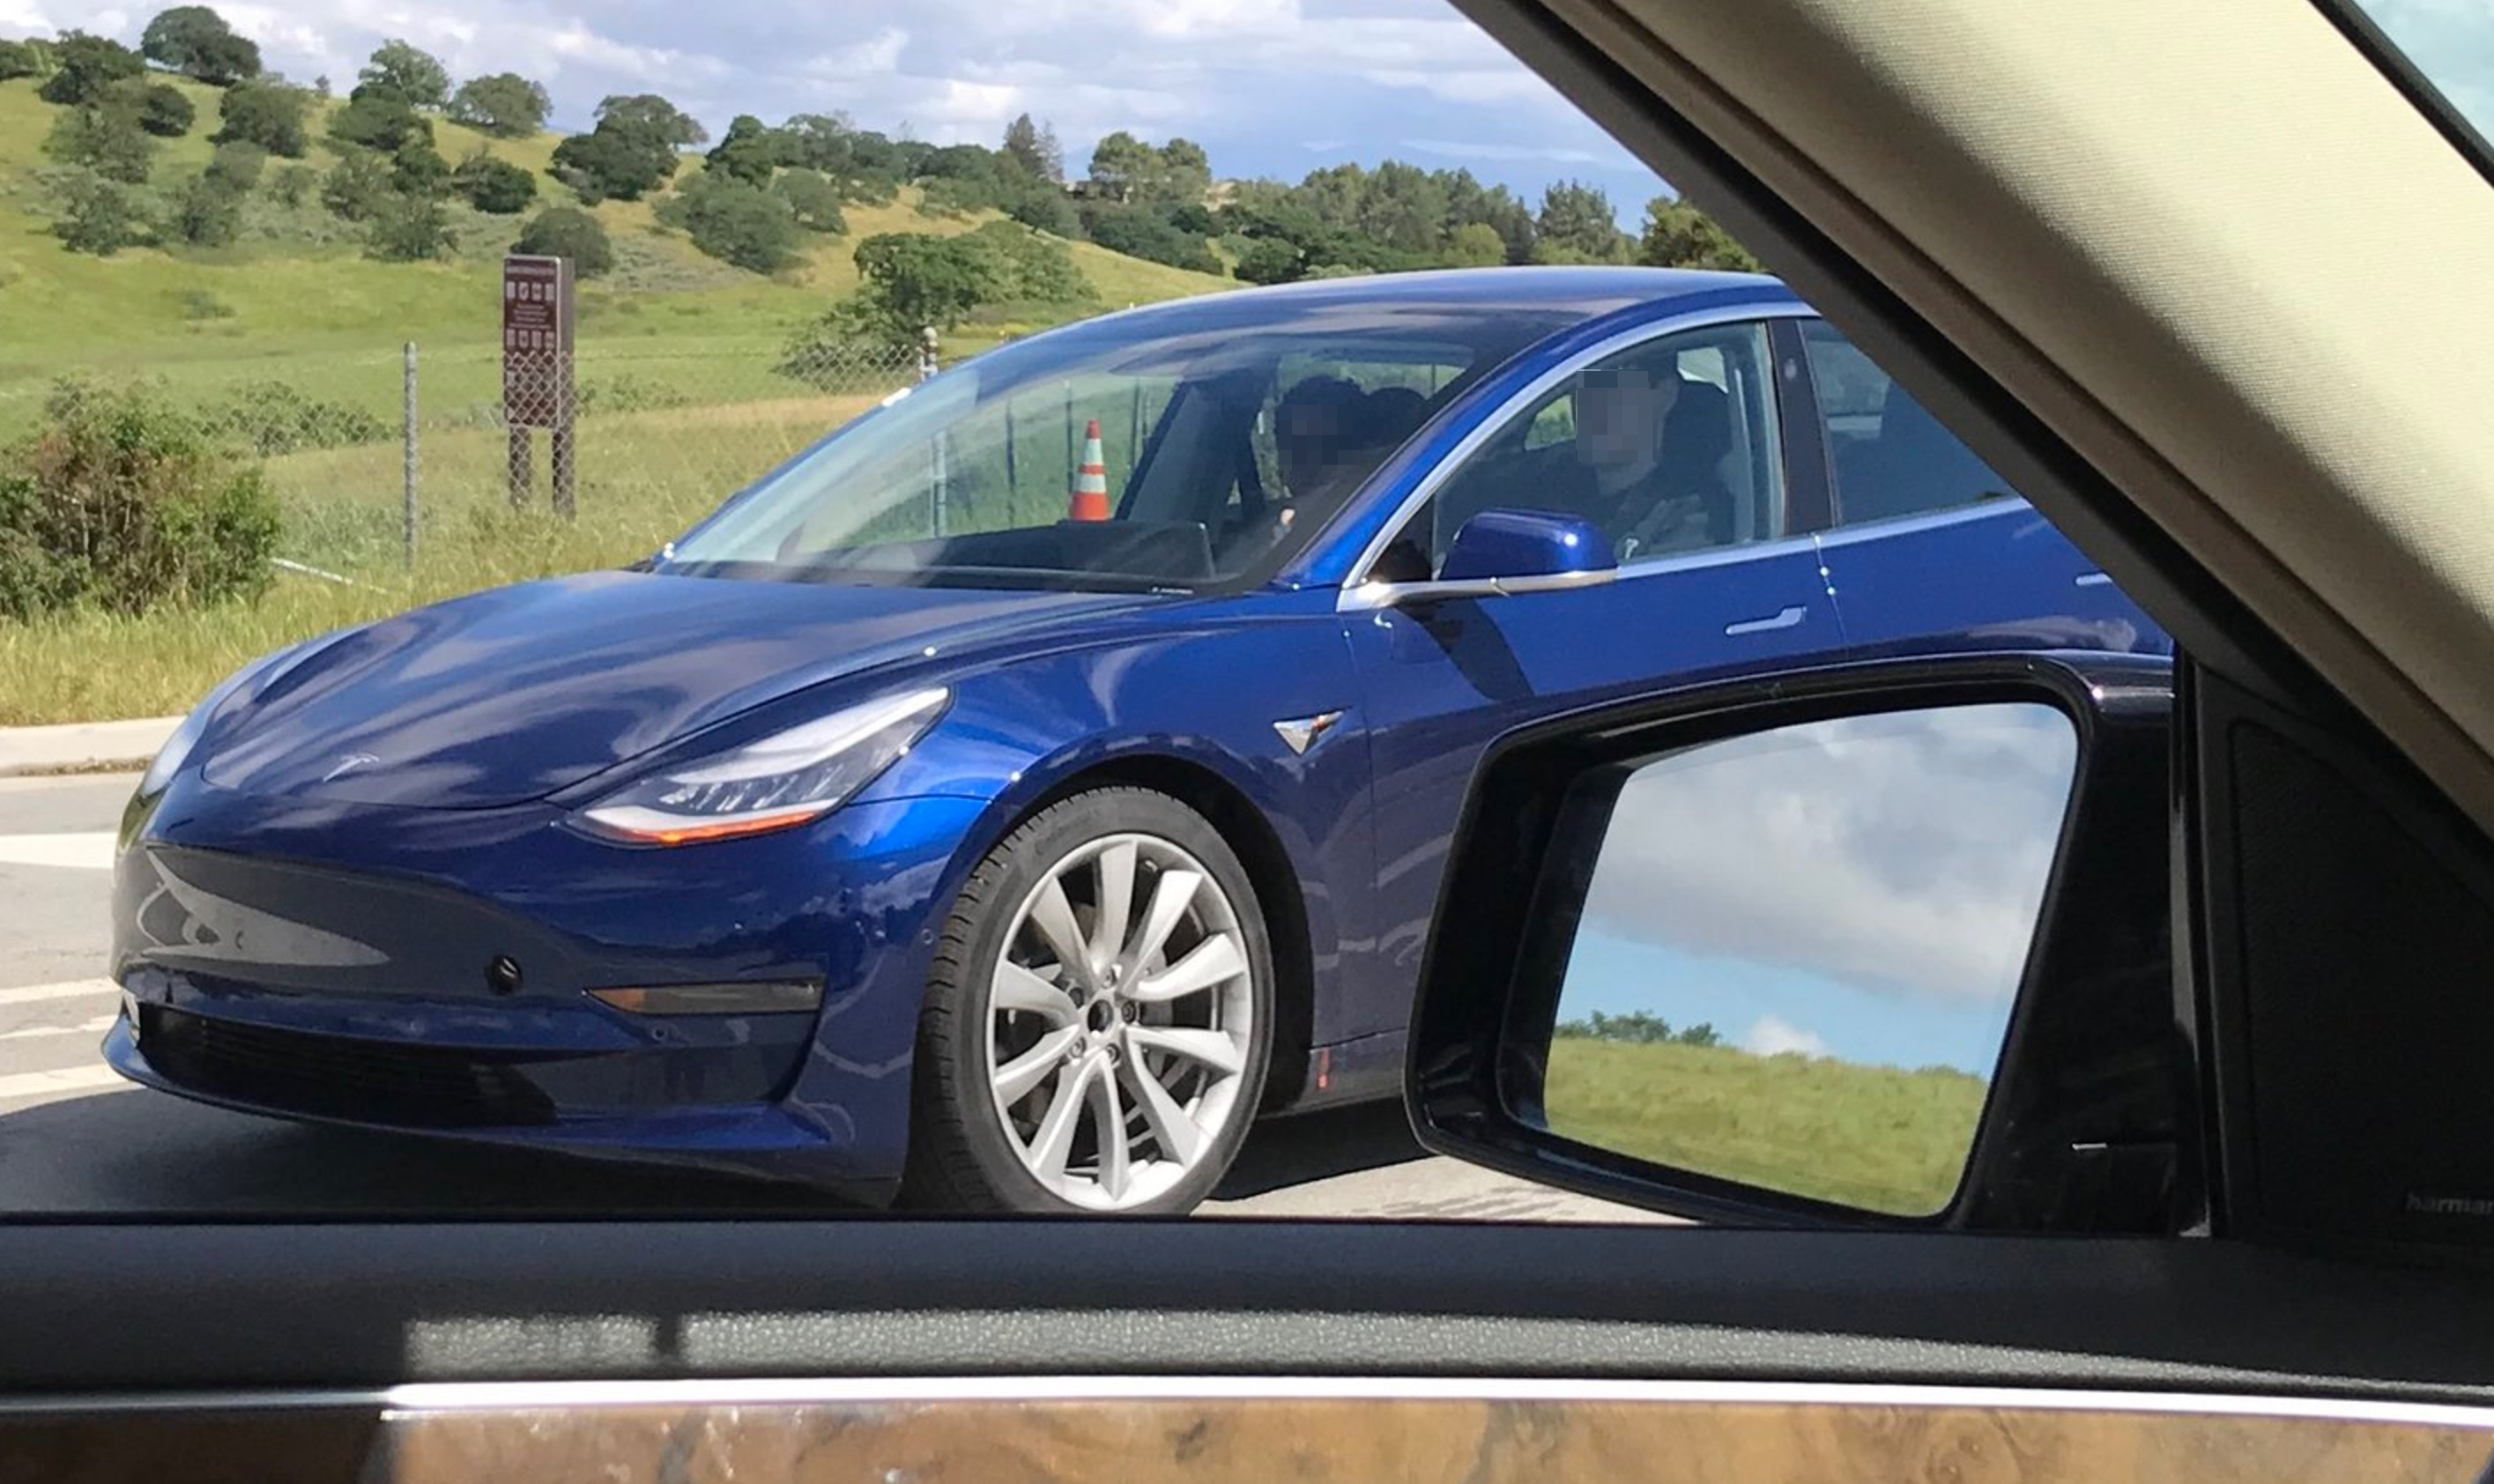 First Sighting Of A Blue Tesla Model 3 Testing On The